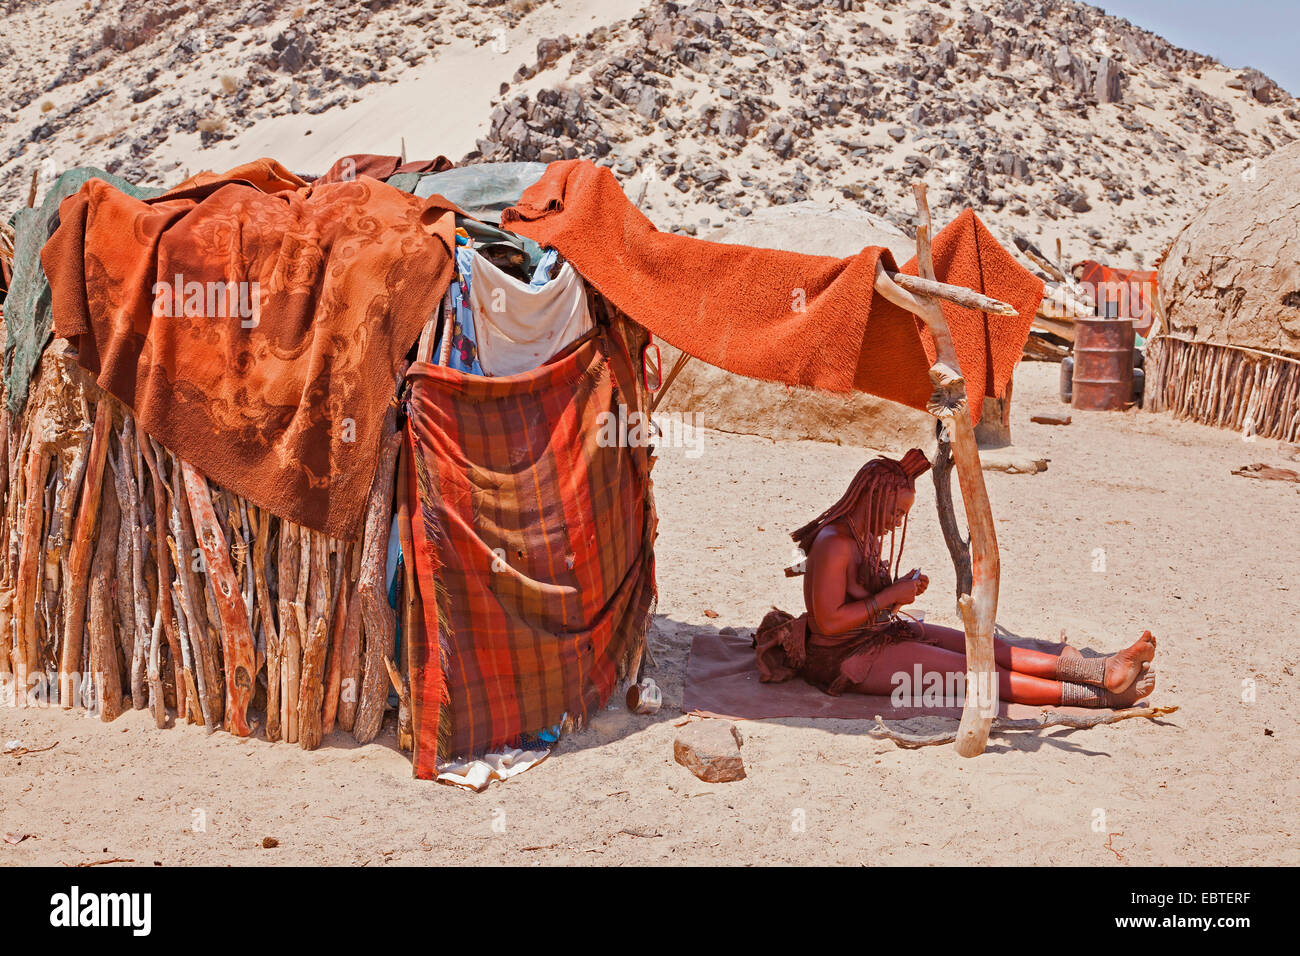 himba woman resting in the shade of her hut, Namibia - Stock Image